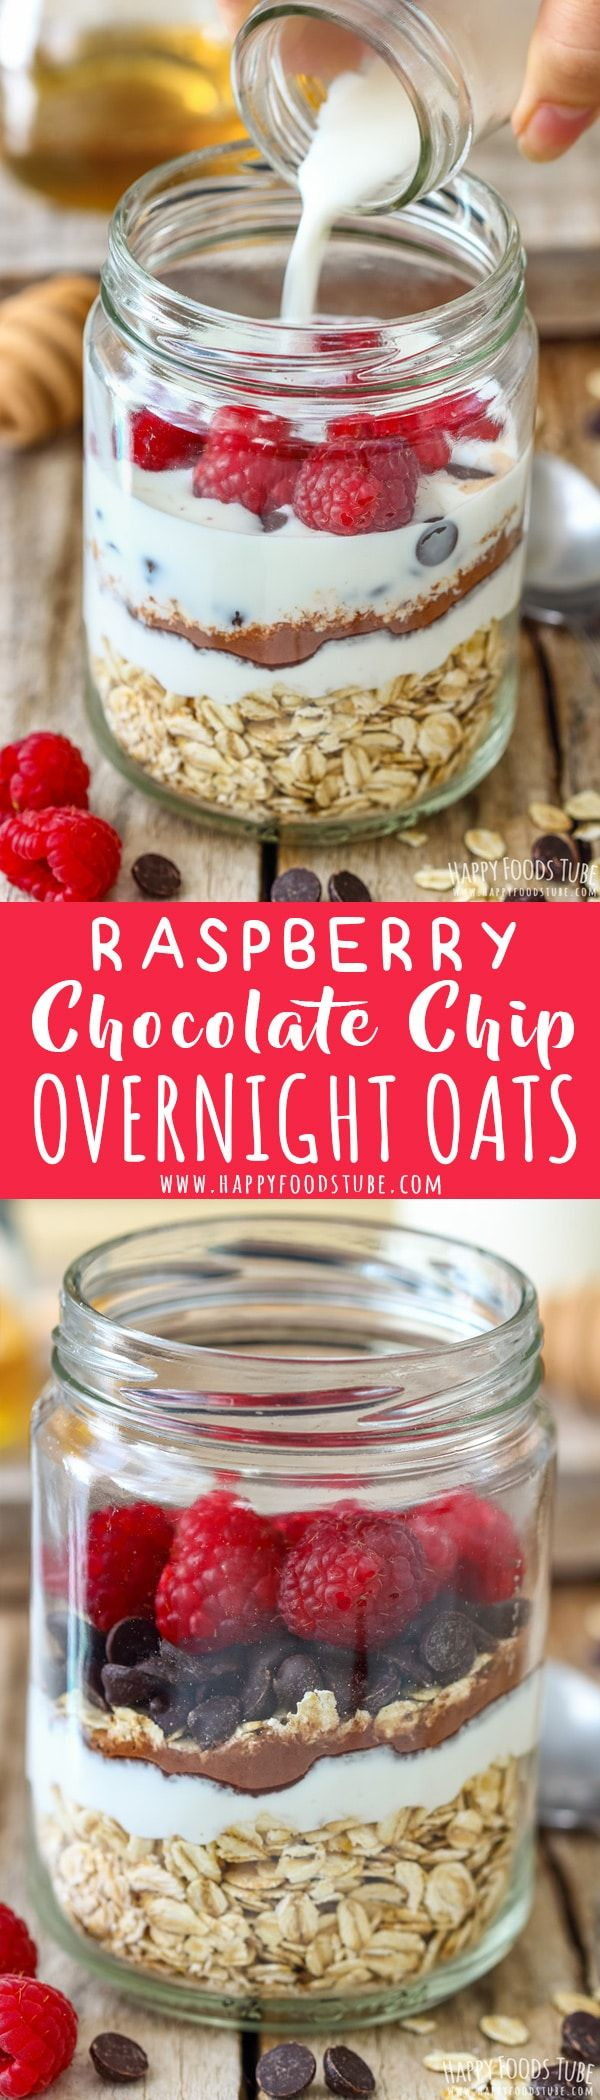 Looking for hassle-free breakfast recipes? Then Raspberry Chocolate Chip Overnight Oats are for you. This nutrient and protein rich overnight oats can be enjoyed cold or warm. #overnightoats #oats #breakfast #raspberry #chocolatechips #recipe via @happyfoodstube